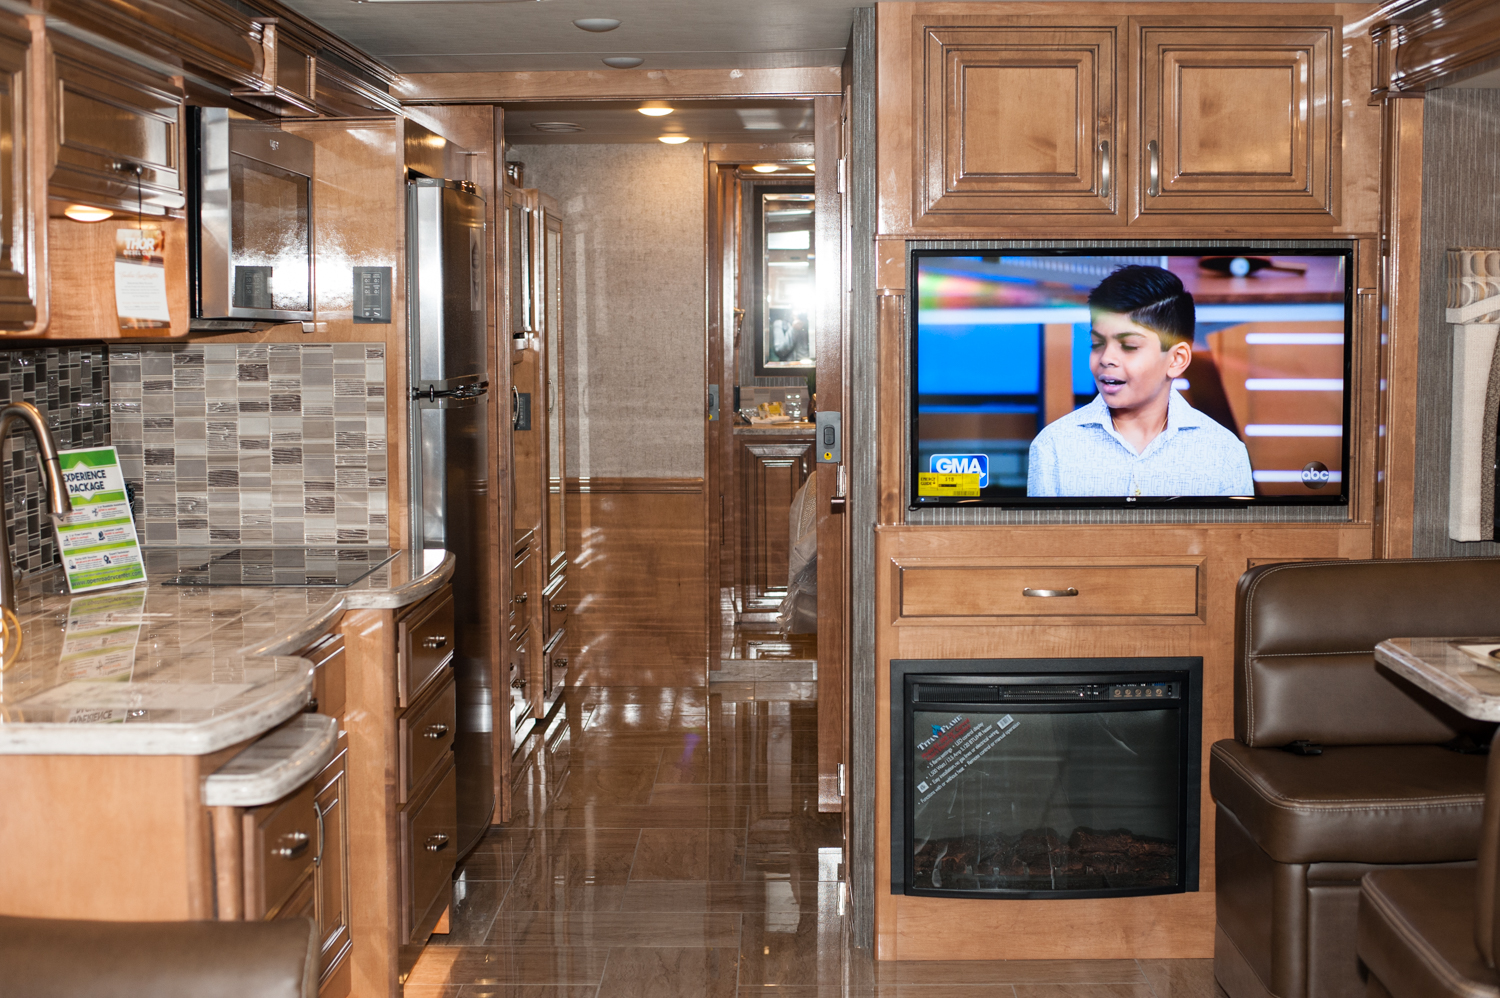 $317, 900 - Thor Mortor Coach, Inc's 2019 Aria 3901. The Tacoma RV Show is happening this weekend (Jan. 17-20) at the Tacoma Dome, with hundreds of RV's on display and more than 100 brands at the show. Since we are Seattle 'Refined' - you know we had to check out the most expensive, swankiest vehicles at the show! (Image: Elizabeth Crook / Seattle Refined)